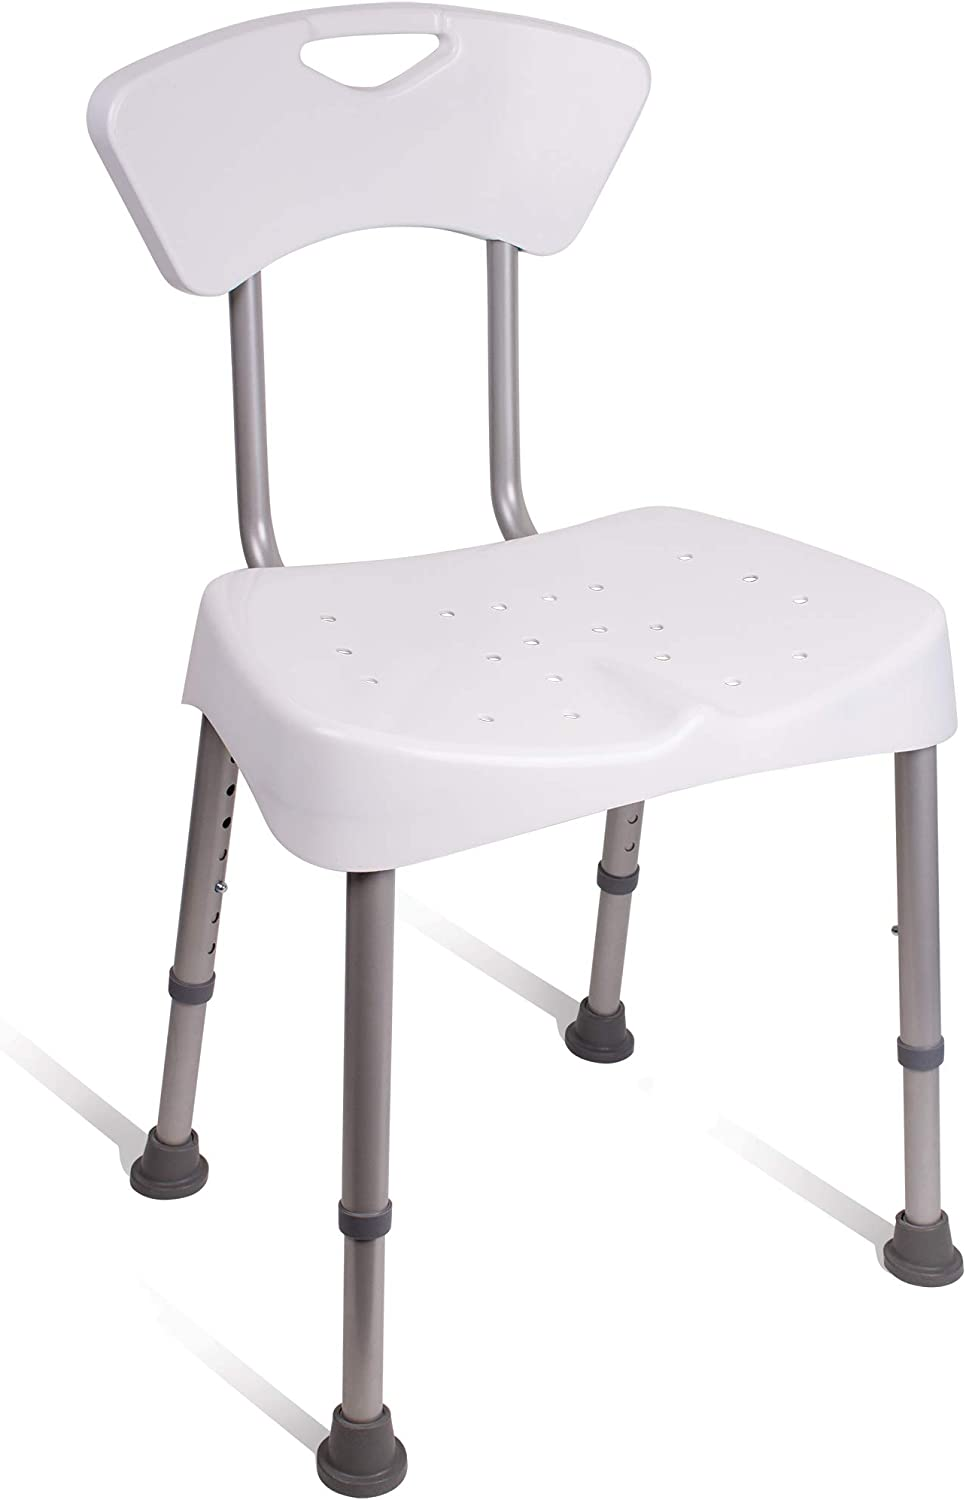 Carex Carex Shower Chair and Bath Seat